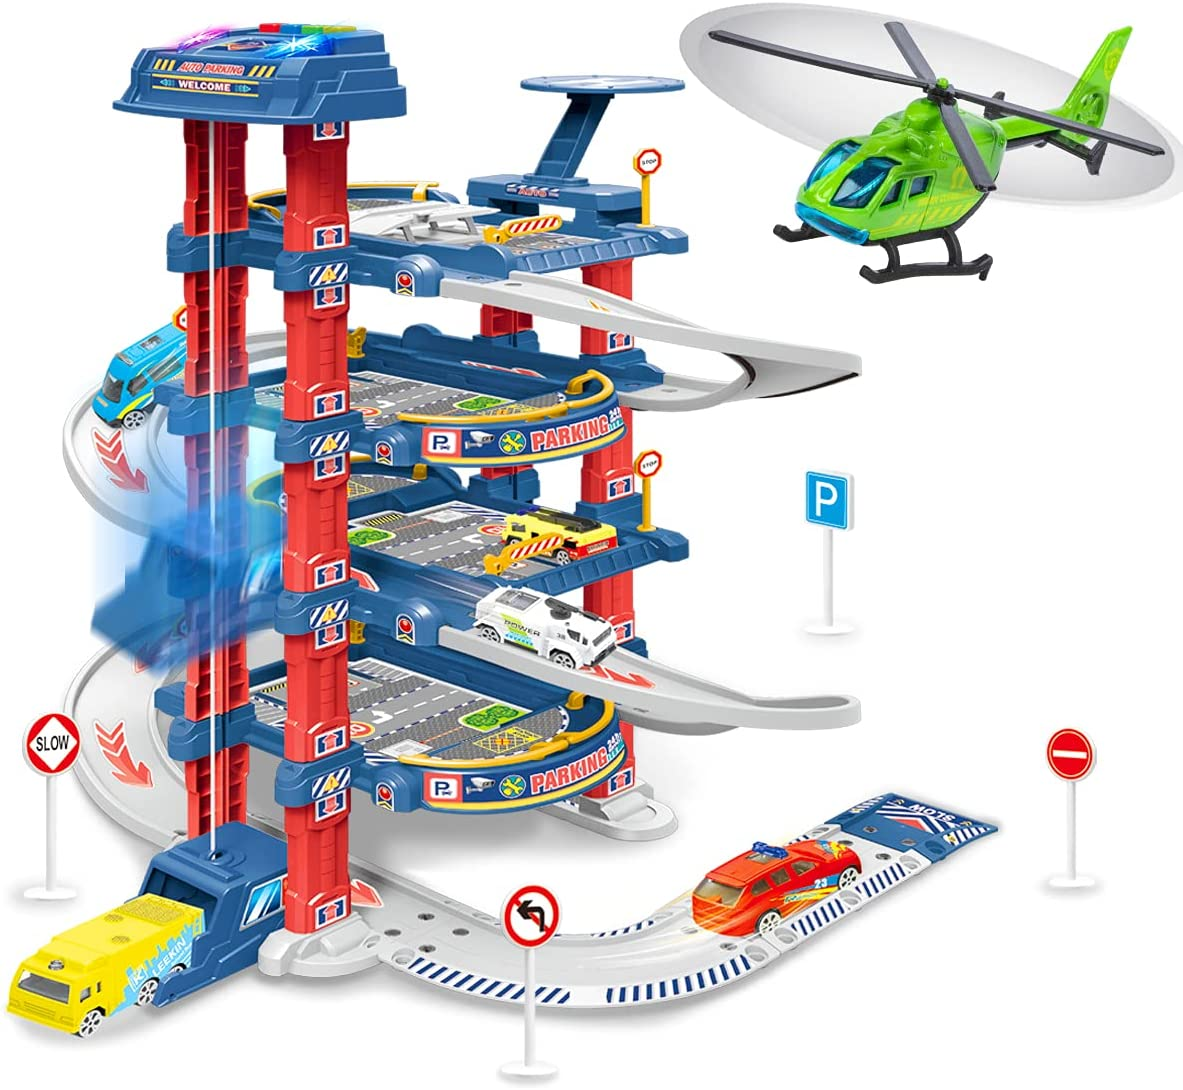 UNIH City Ultimate Garage Race Car Track 5 2021 autumn and winter new Fashionable with Sets 1 Cars H